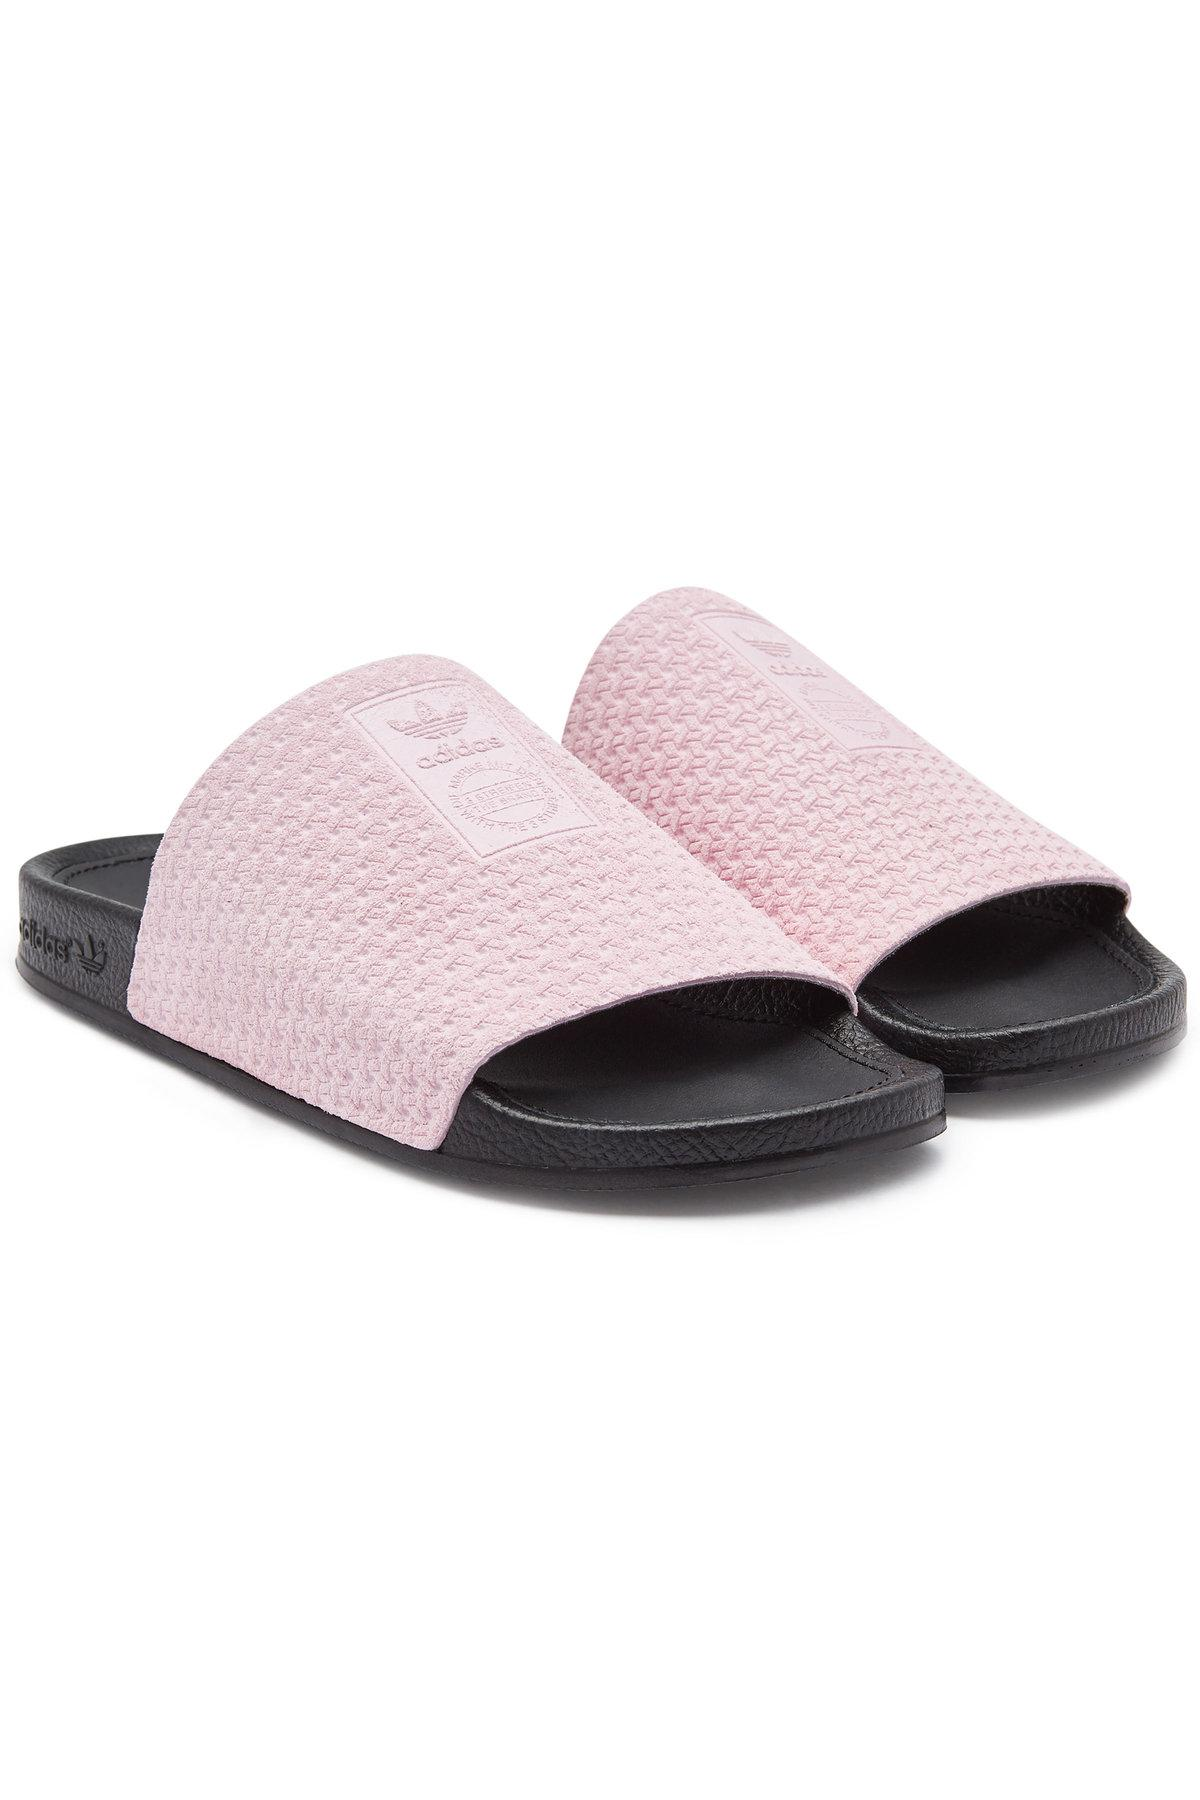 9eedd2209 adidas Originals Adilette Luxe Leather Slides in Pink - Lyst